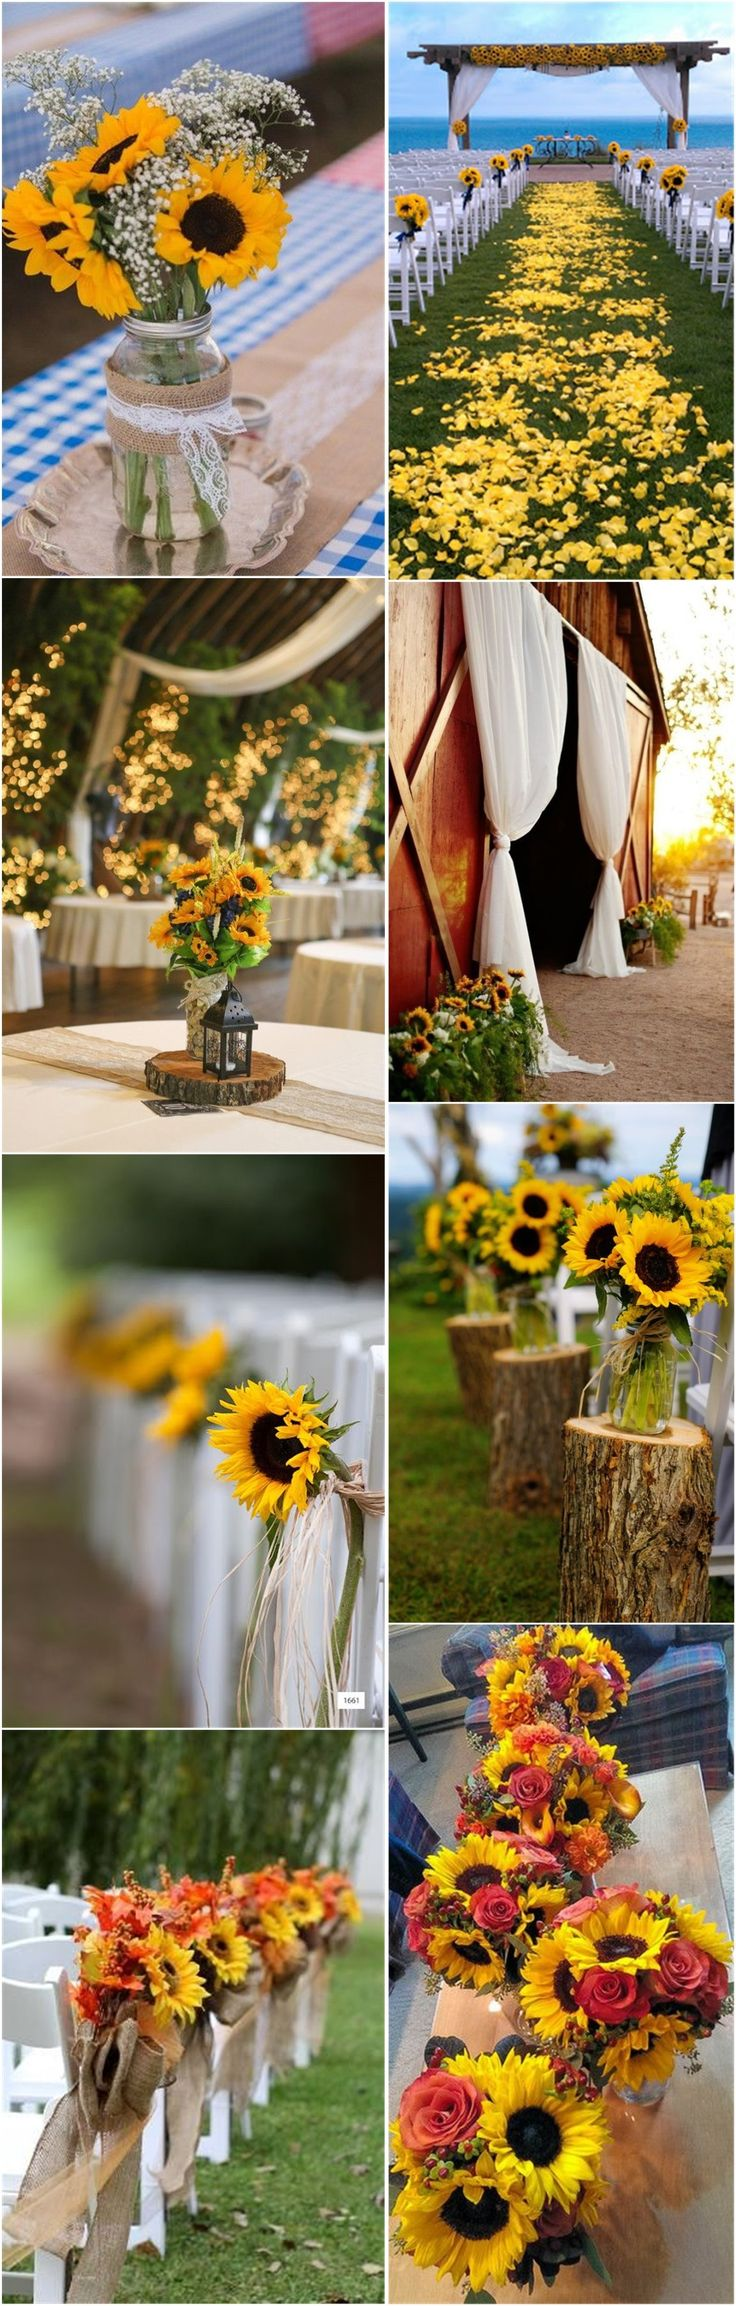 The 25 best small wedding decor ideas on pinterest for Small wedding centerpieces